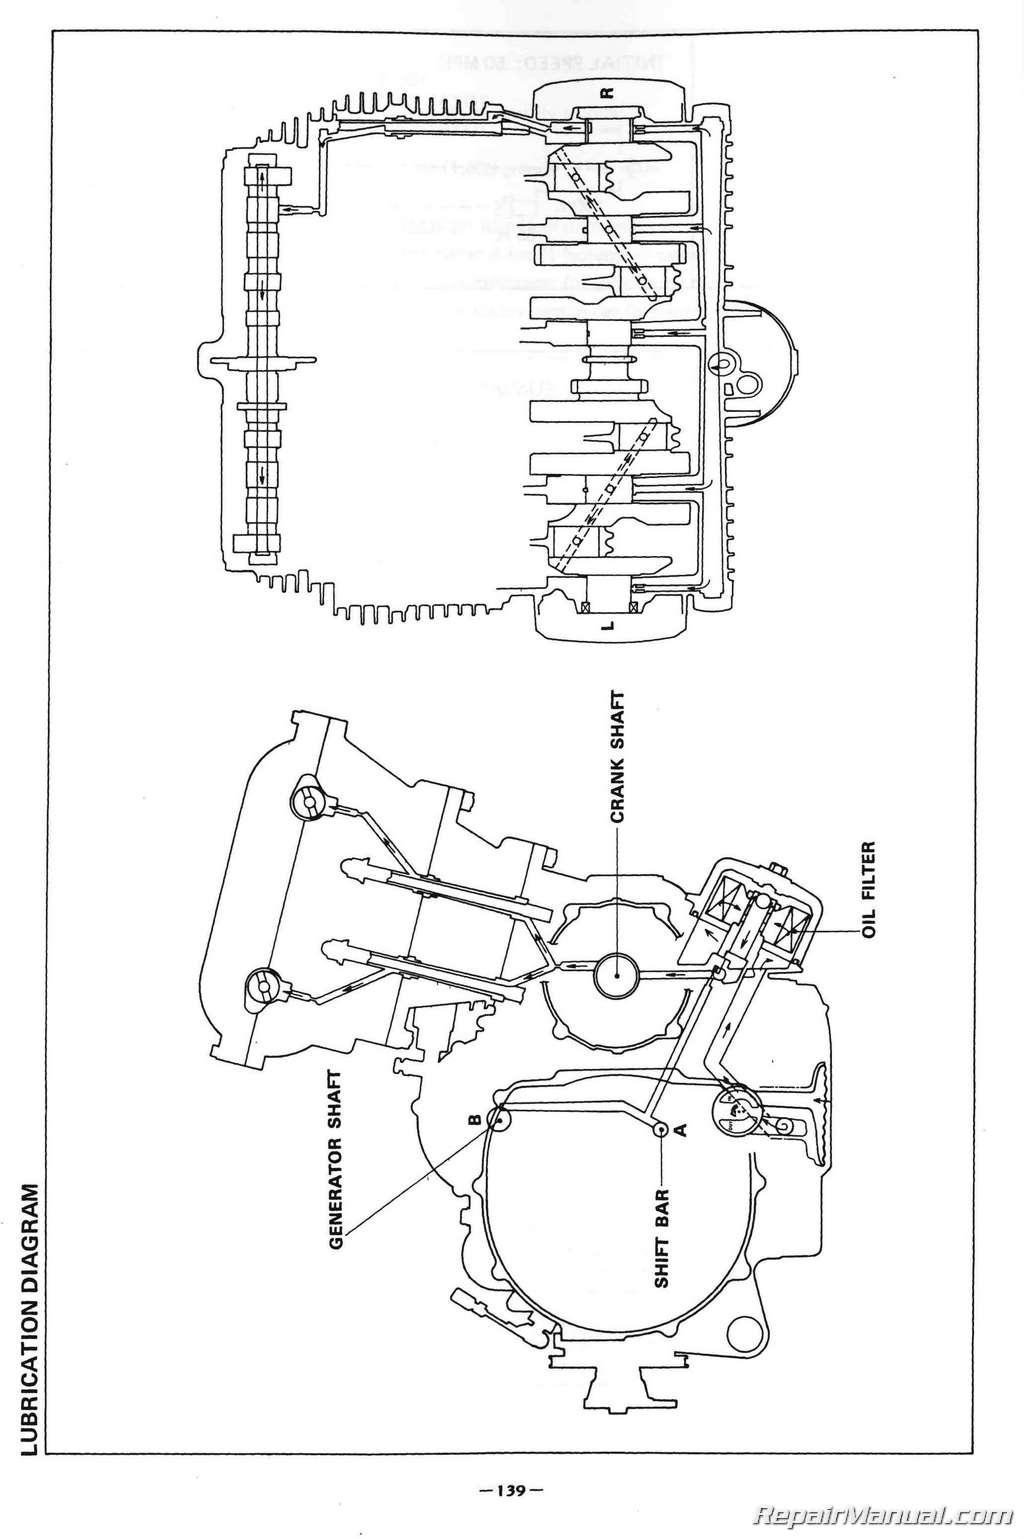 Yamaha Xj Maxim Service Manual Page on Honda Carburetor Book